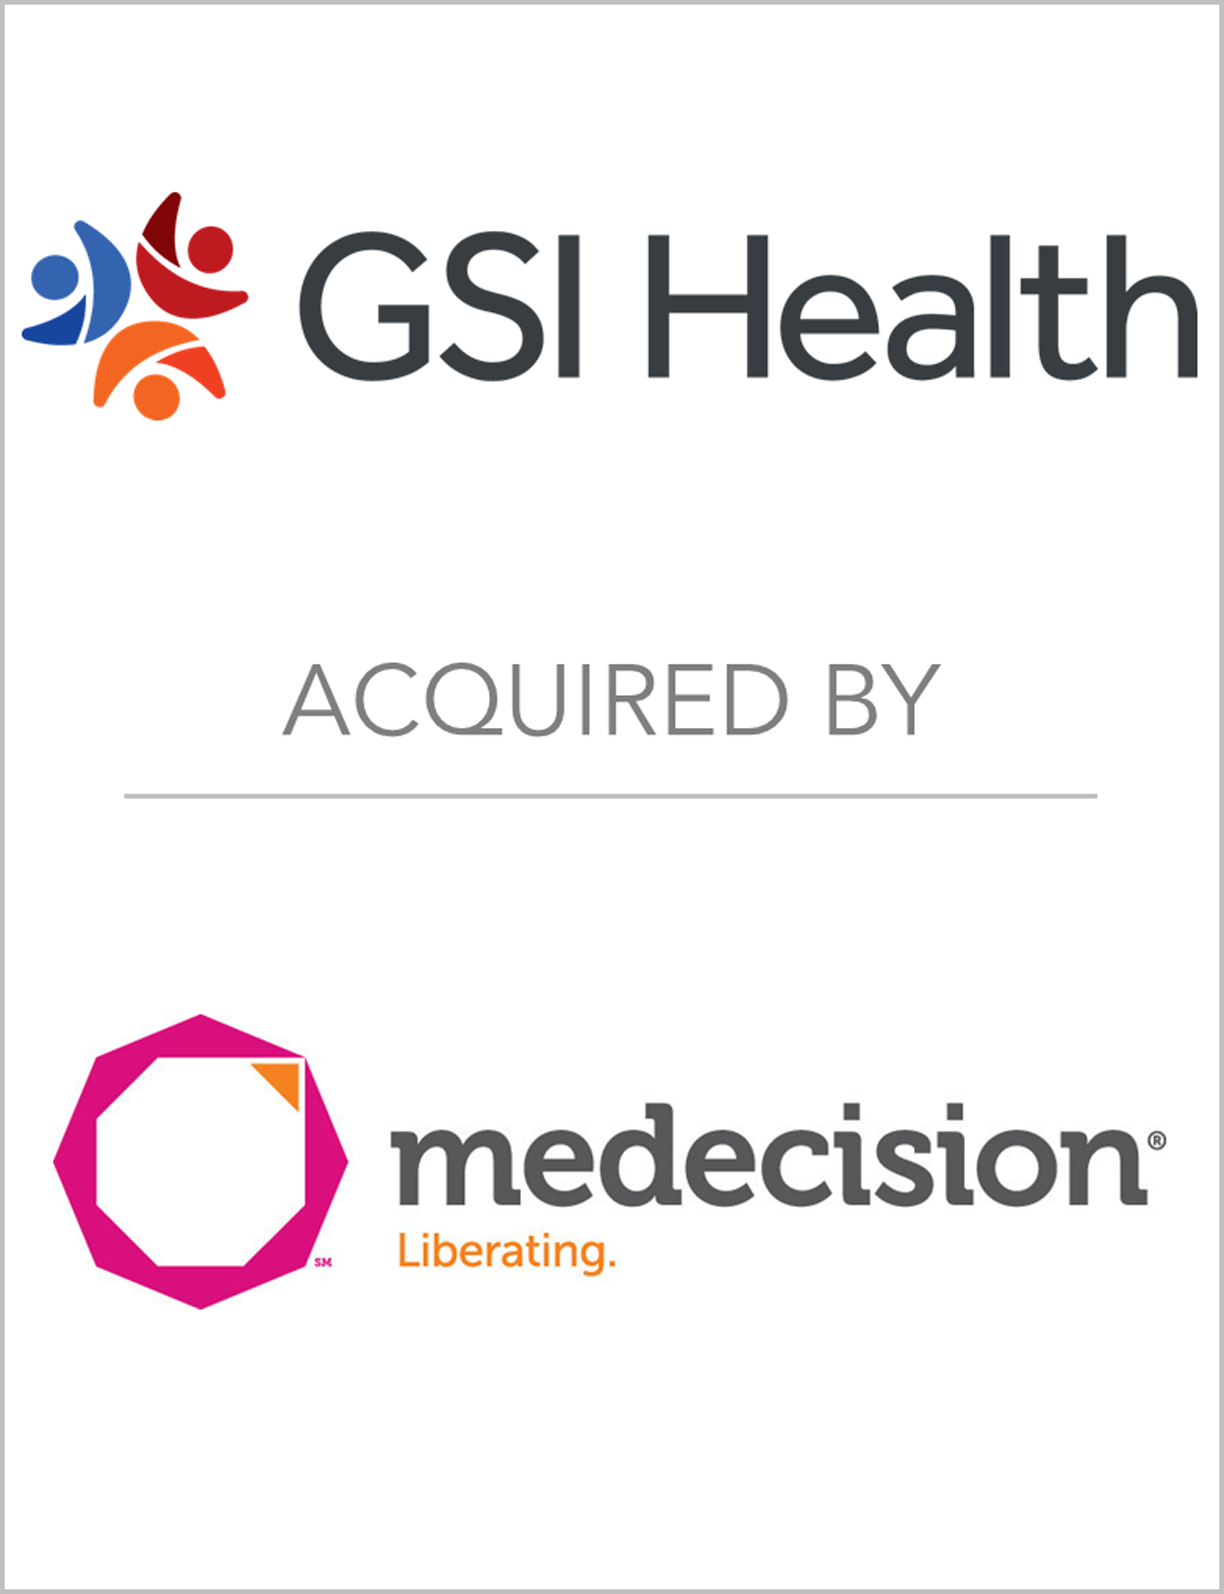 GSIHealth_AcquiredBy_Medecision